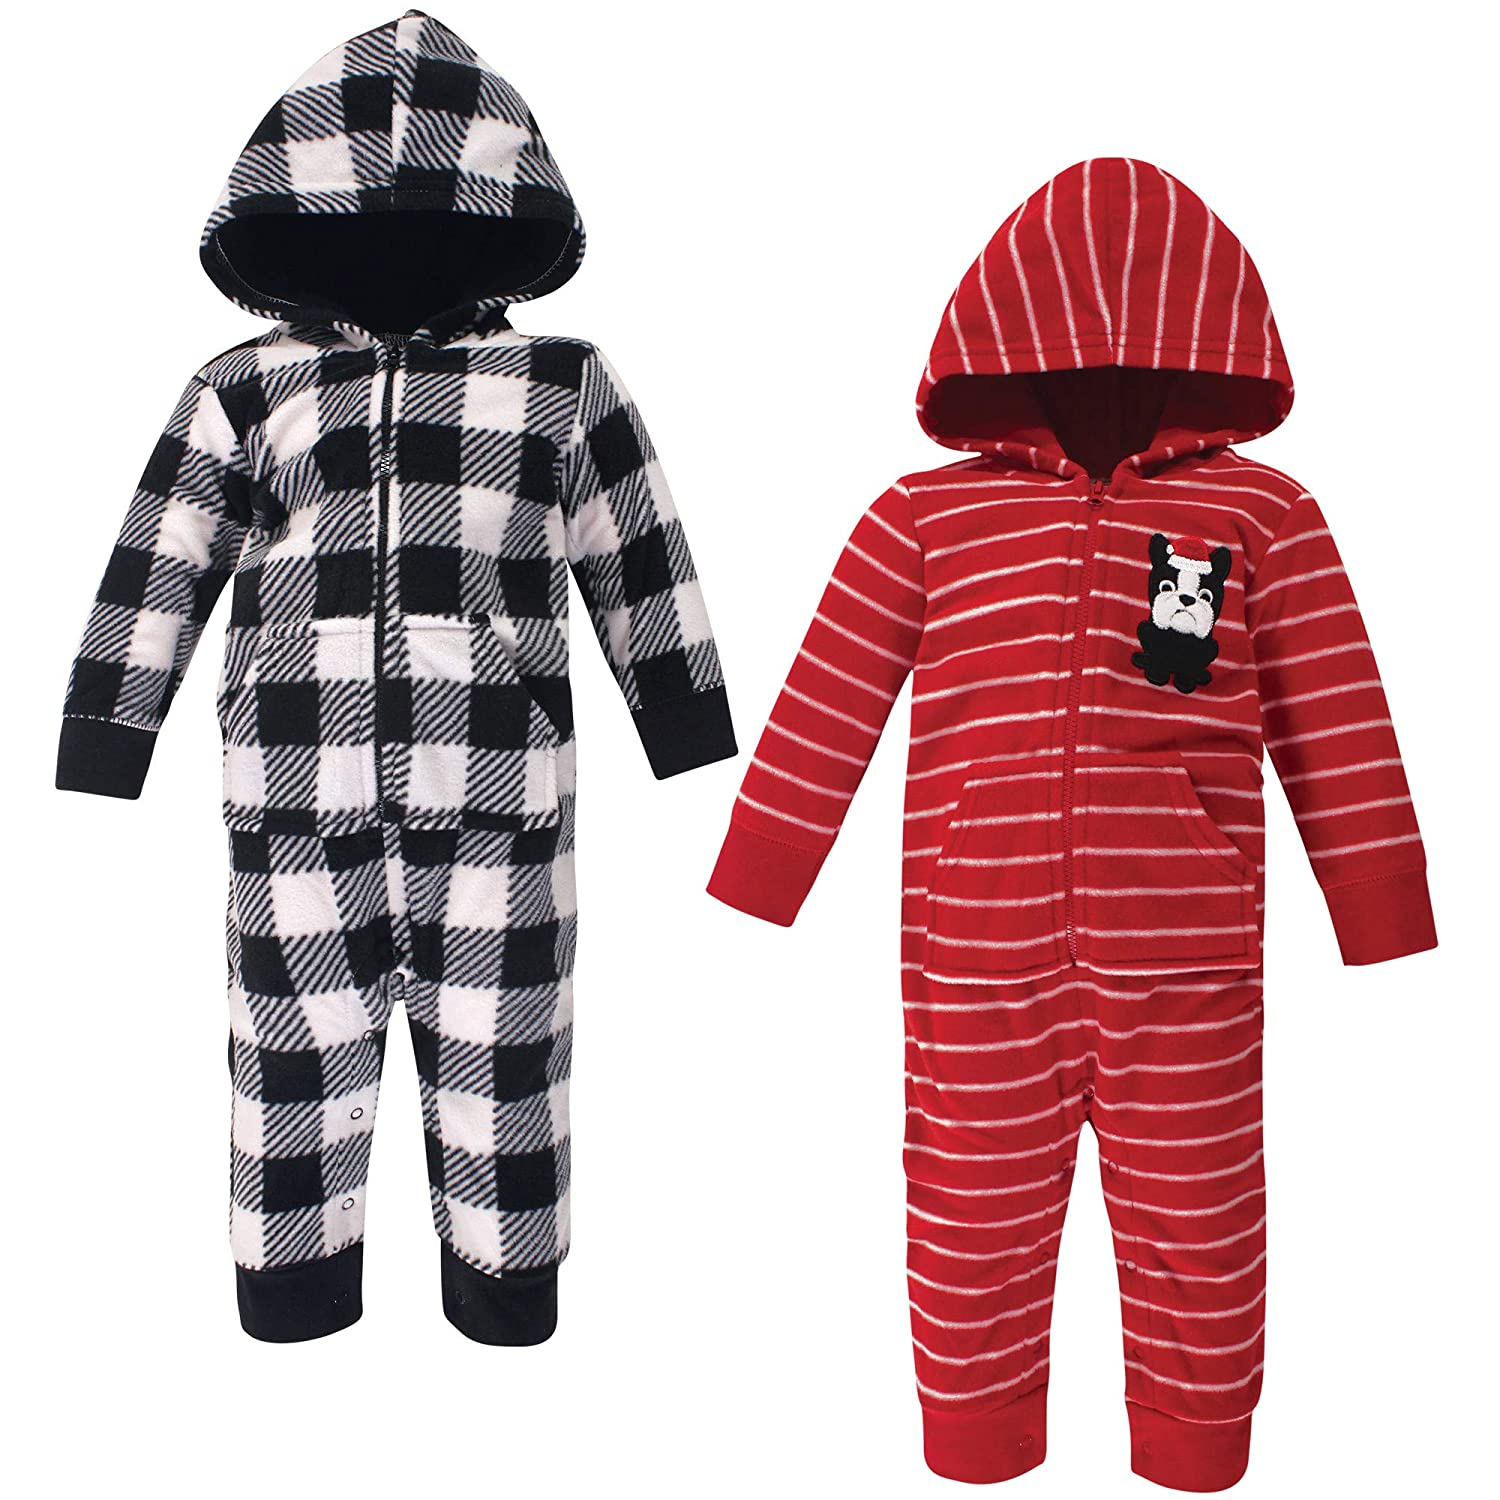 Hudson baby Boys Unisex Baby and Toddler Fleece Jumpsuits and Coveralls